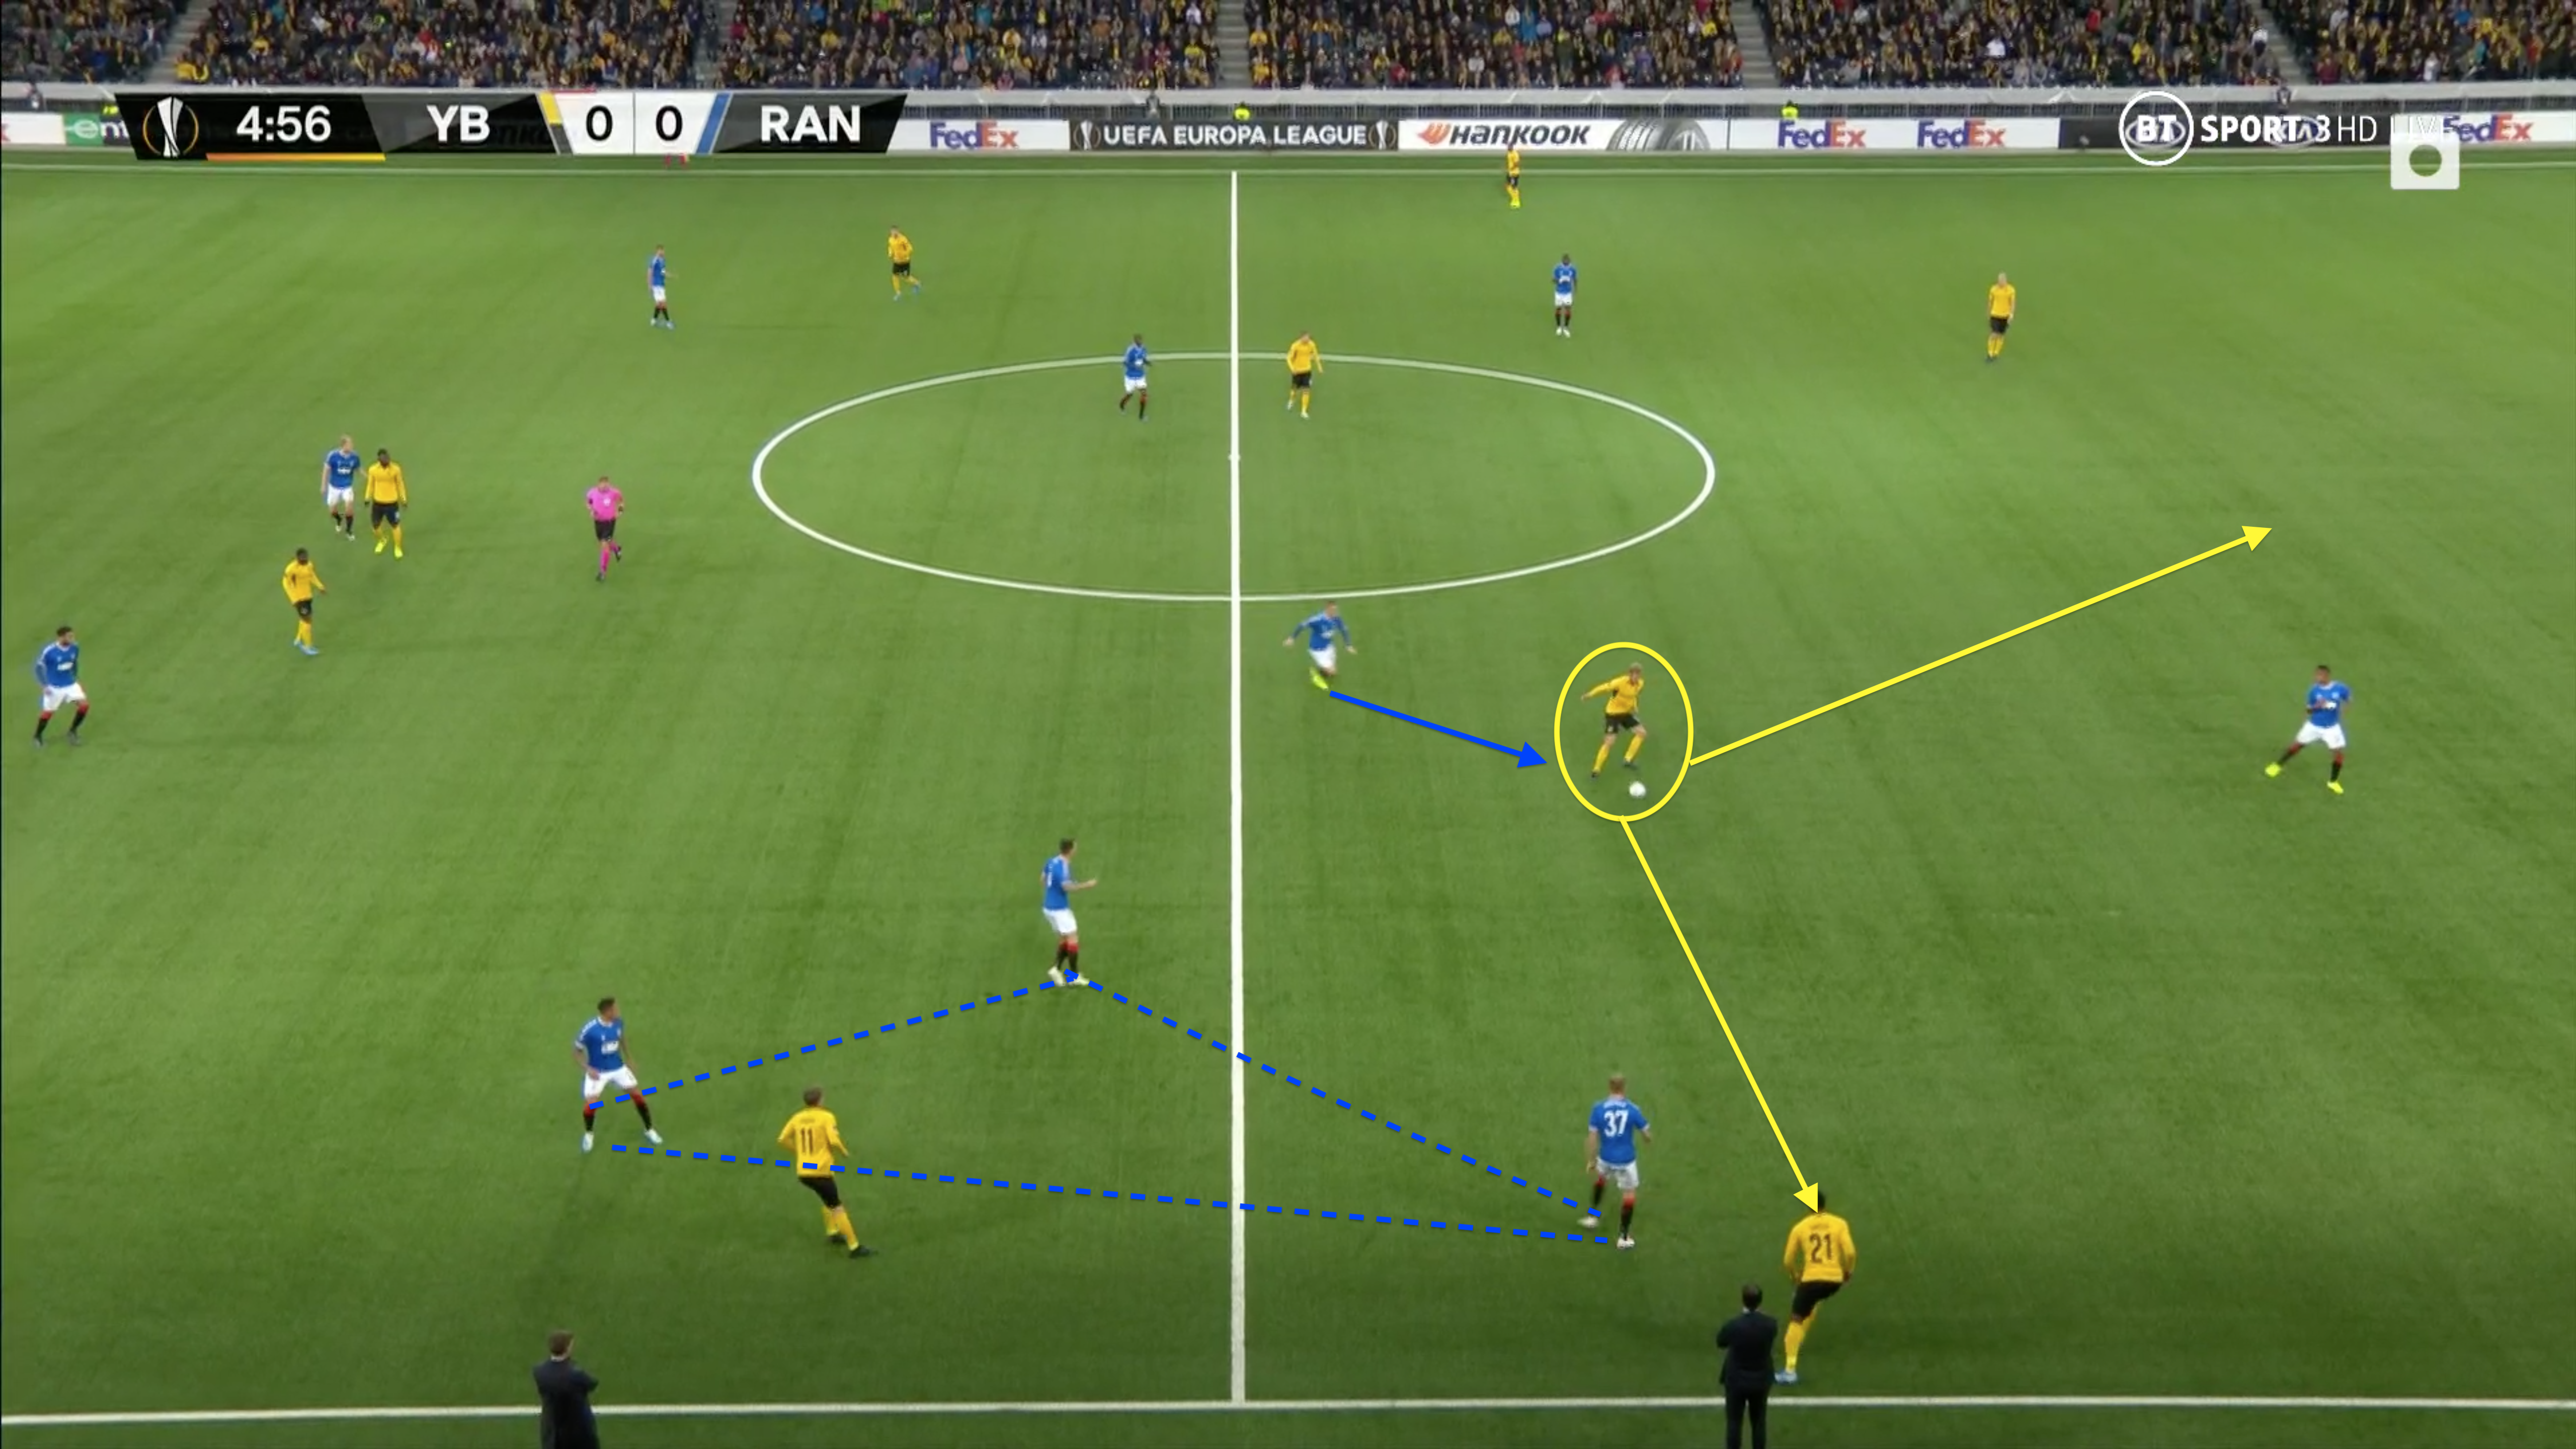 UEFA Europa League 2019/20: Young Boys vs Rangers - tactical analysis tactics